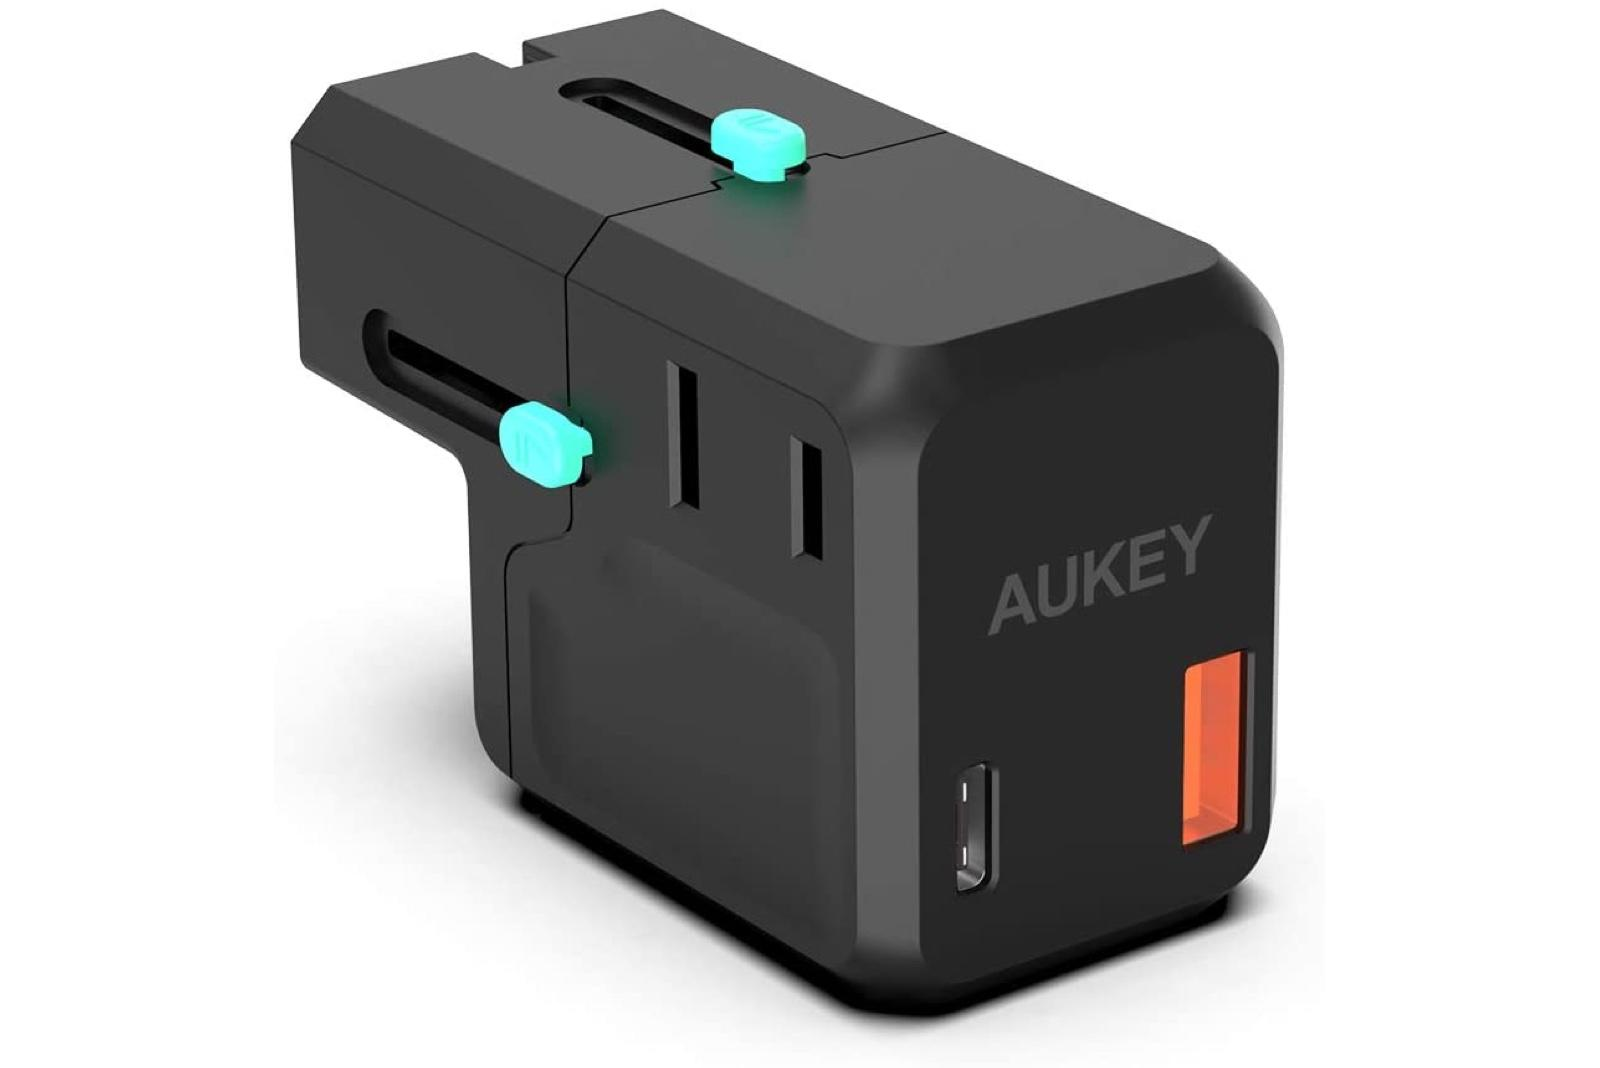 AUKEY Travel Adapter, AC Output up to 2300W, 1x USB Port, 1x USB-C Port with 18W Power Delivery